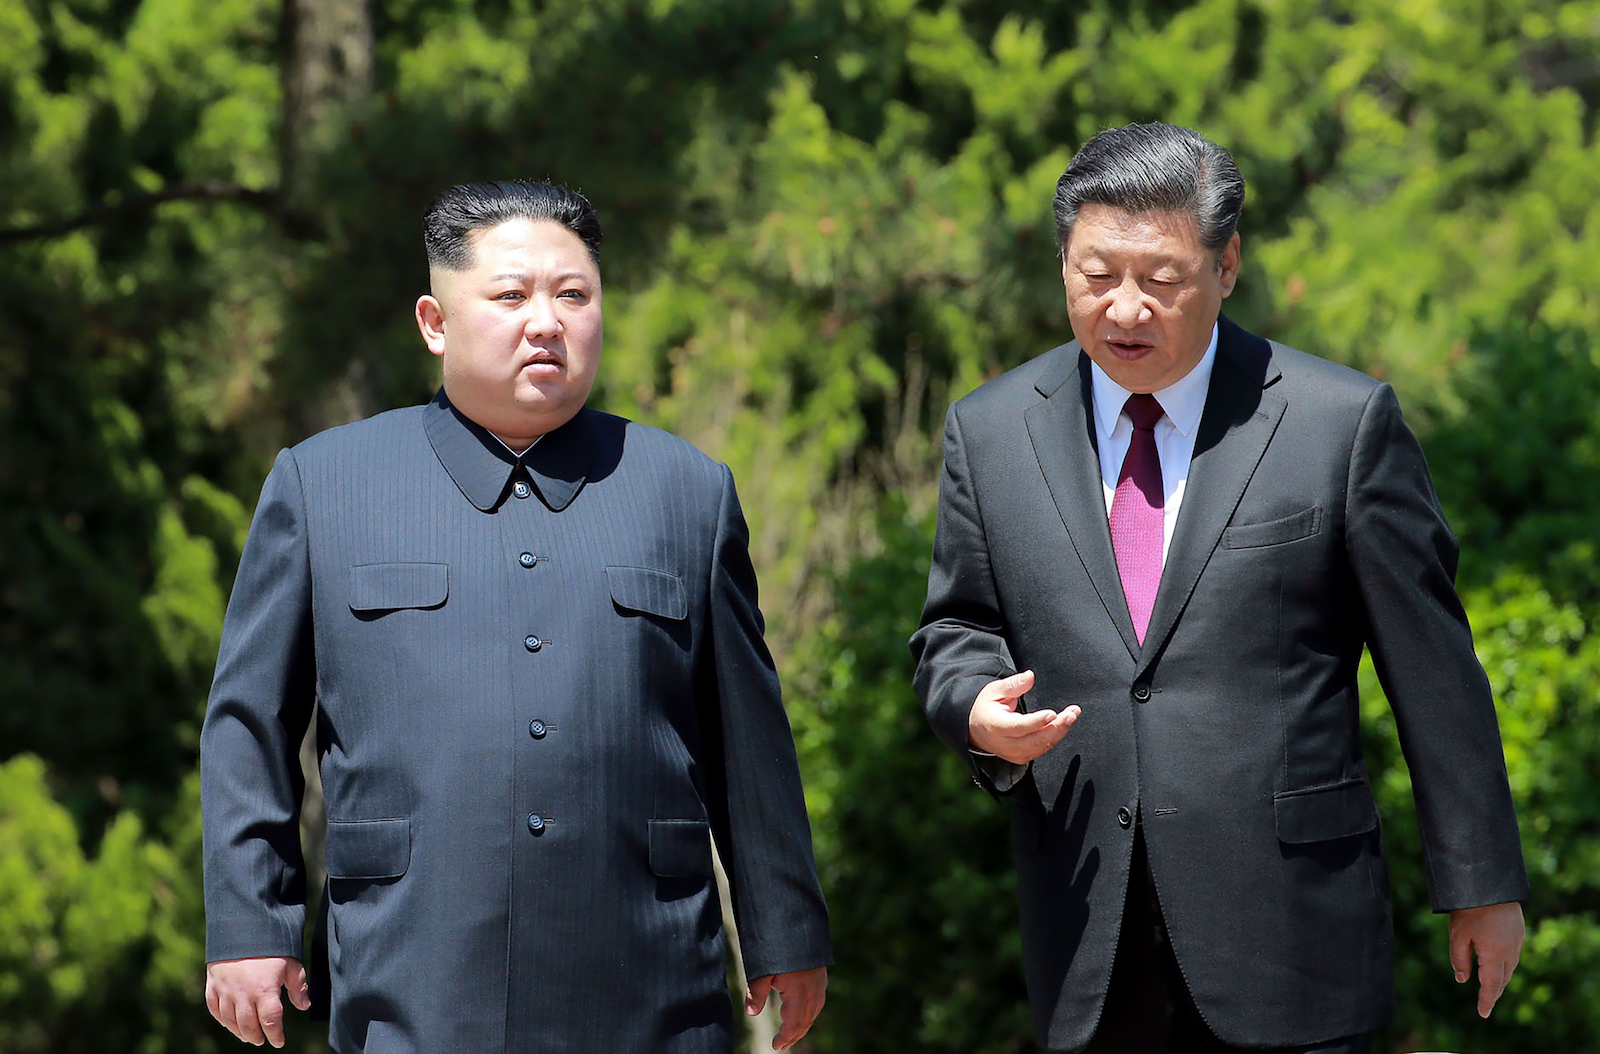 China, North Korea remain reluctant brothers in armsWhile Beijing has guided fast-moving developments on the Korean Peninsula, history shows it would be a mistake to view Pyongyang as its pliant client